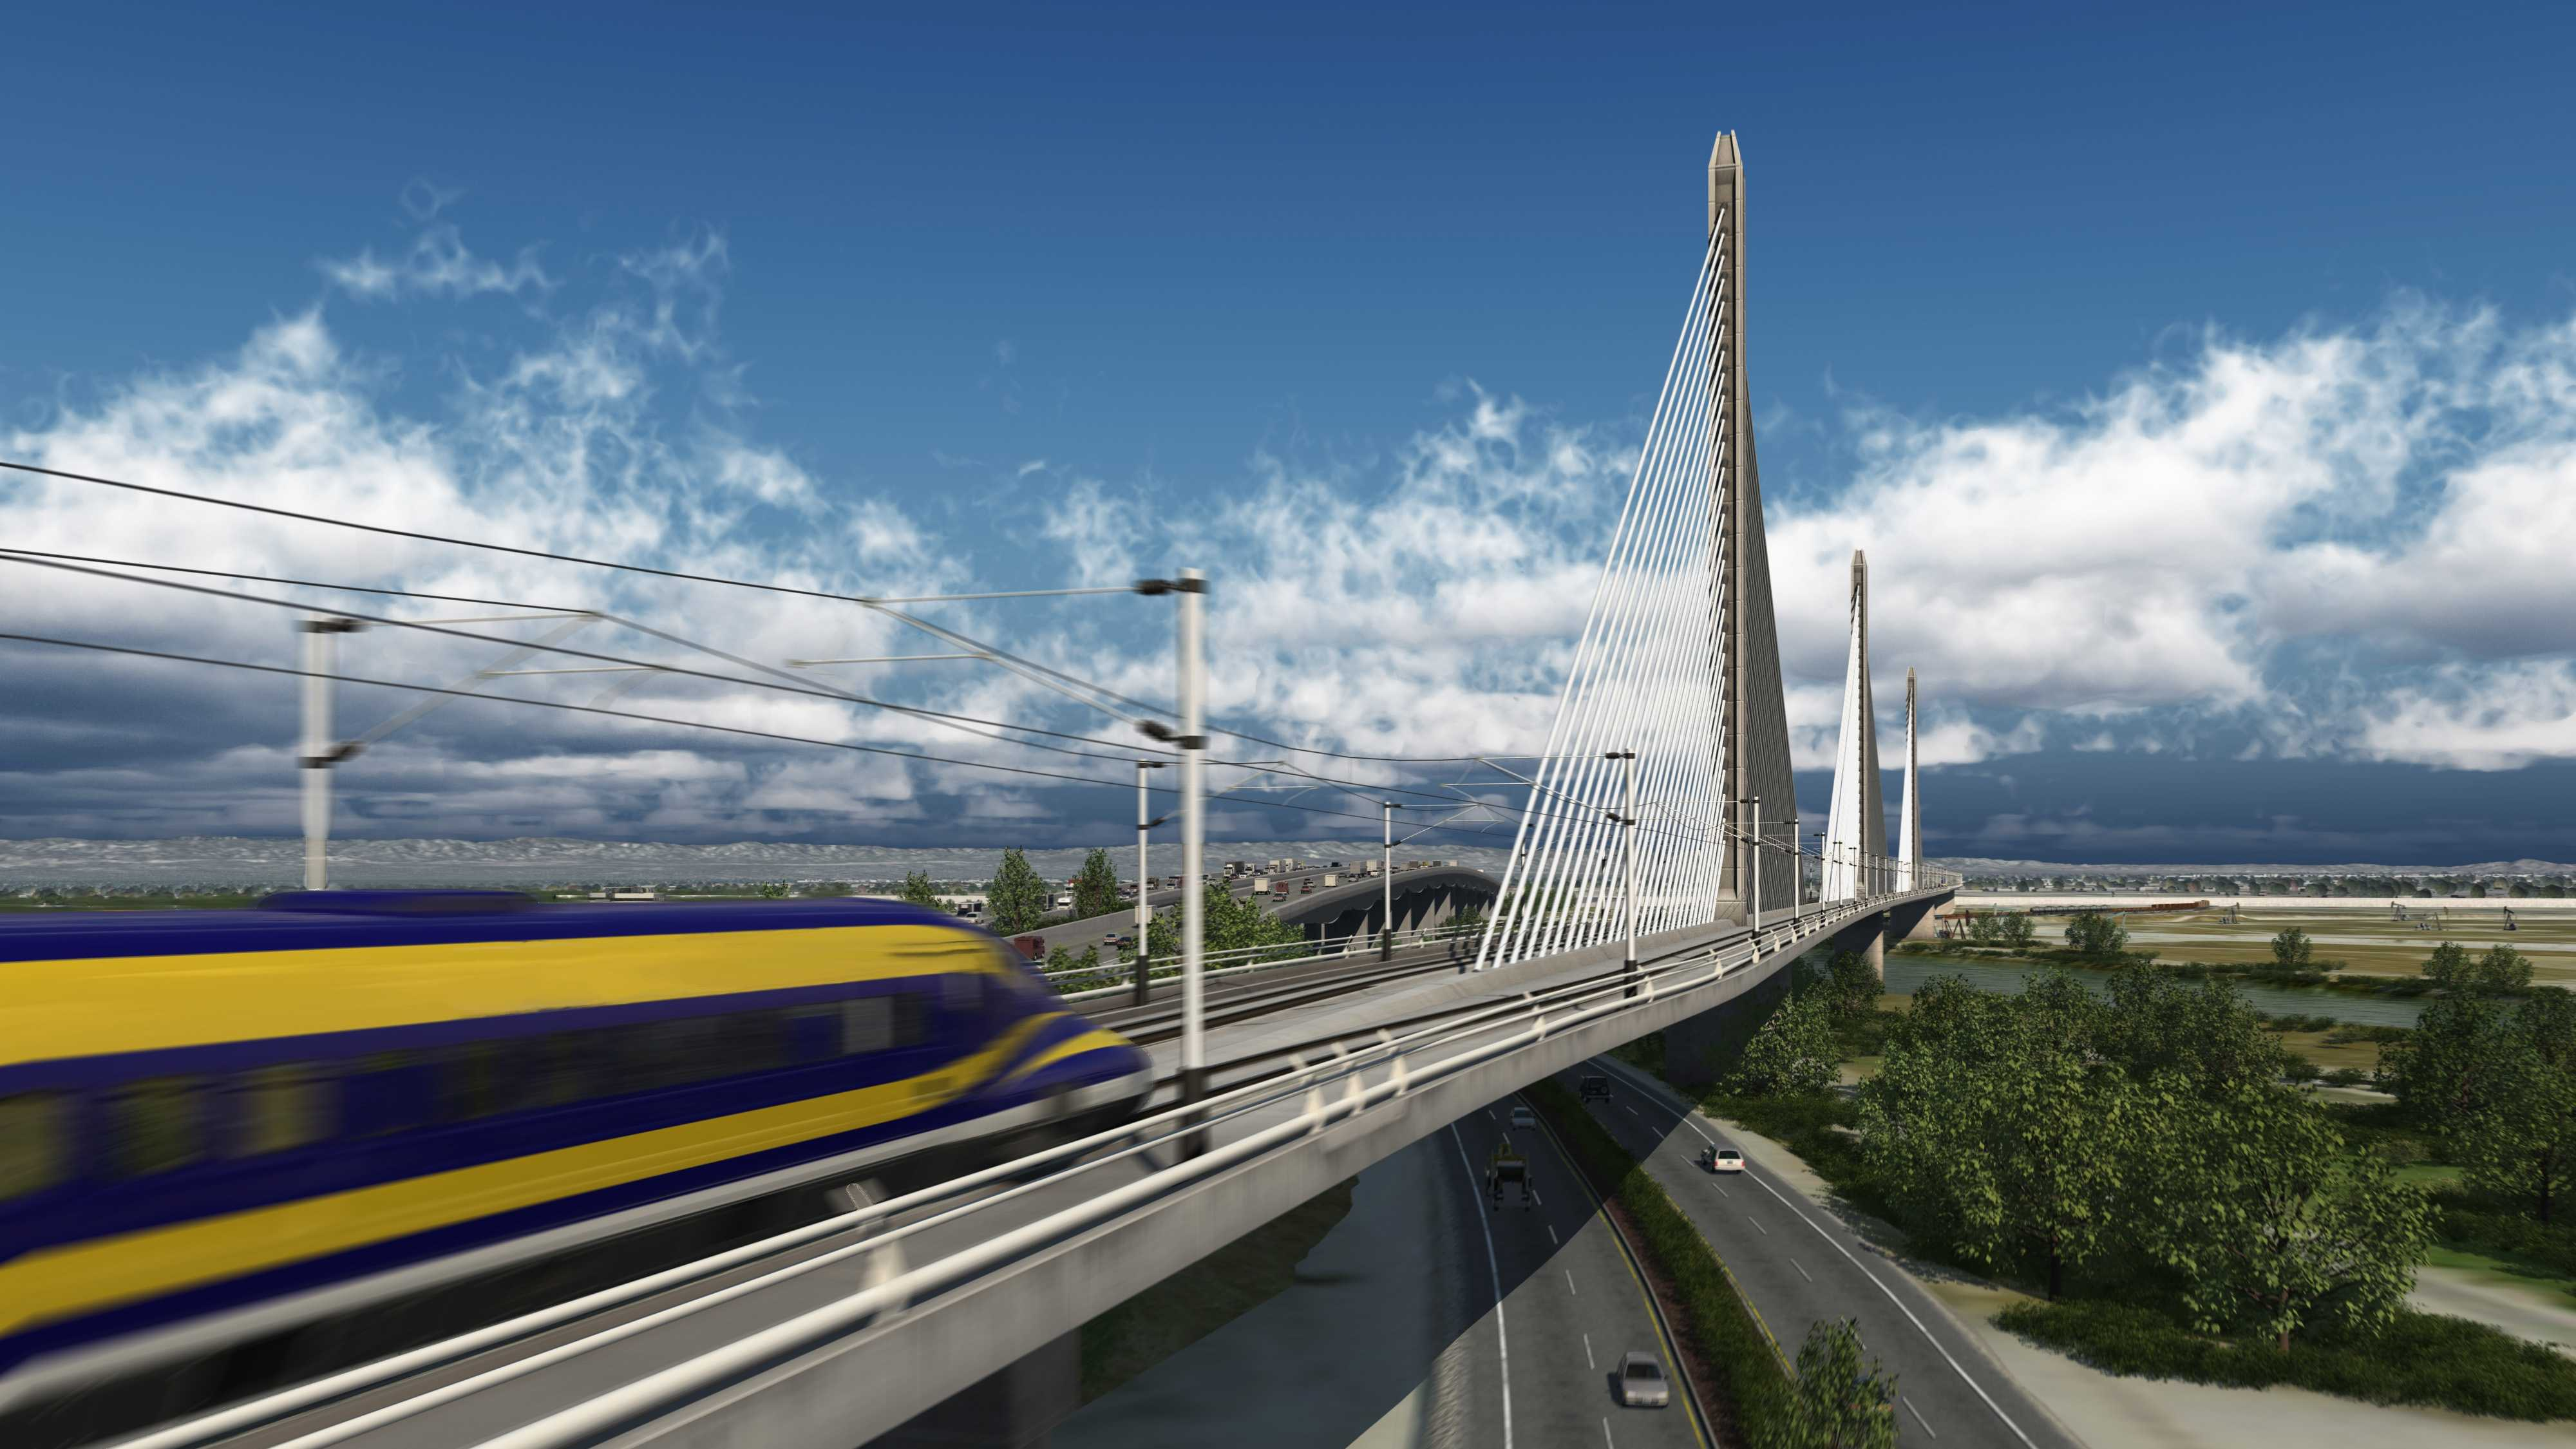 California officials are marking the start of work on nation's first high-speed train, which, when completed, would take travelers from Los Angeles to San Francisco in less than three hours.